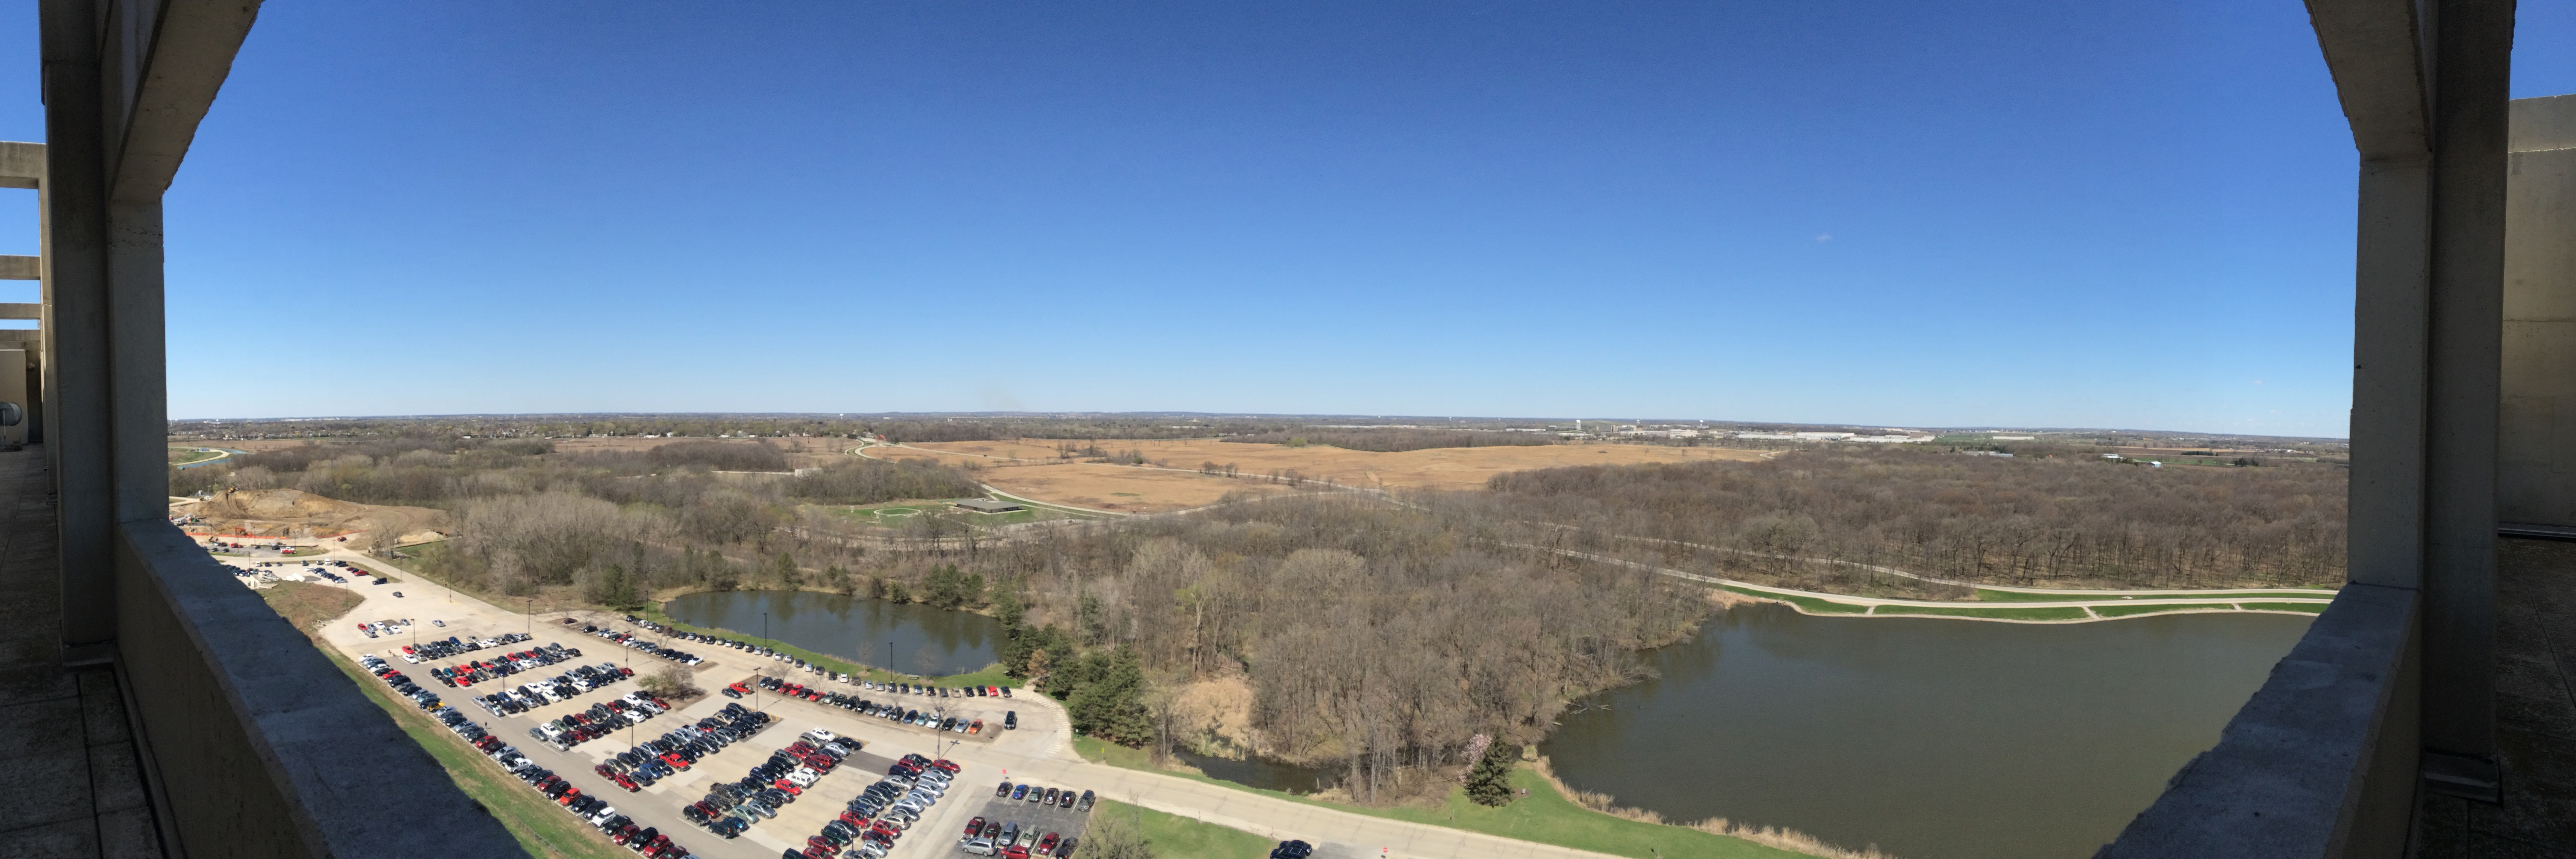 On a clear day you can see … a westward panoramic view of the Fermilab property and beyond. Photo: Dawn McWha, FESS